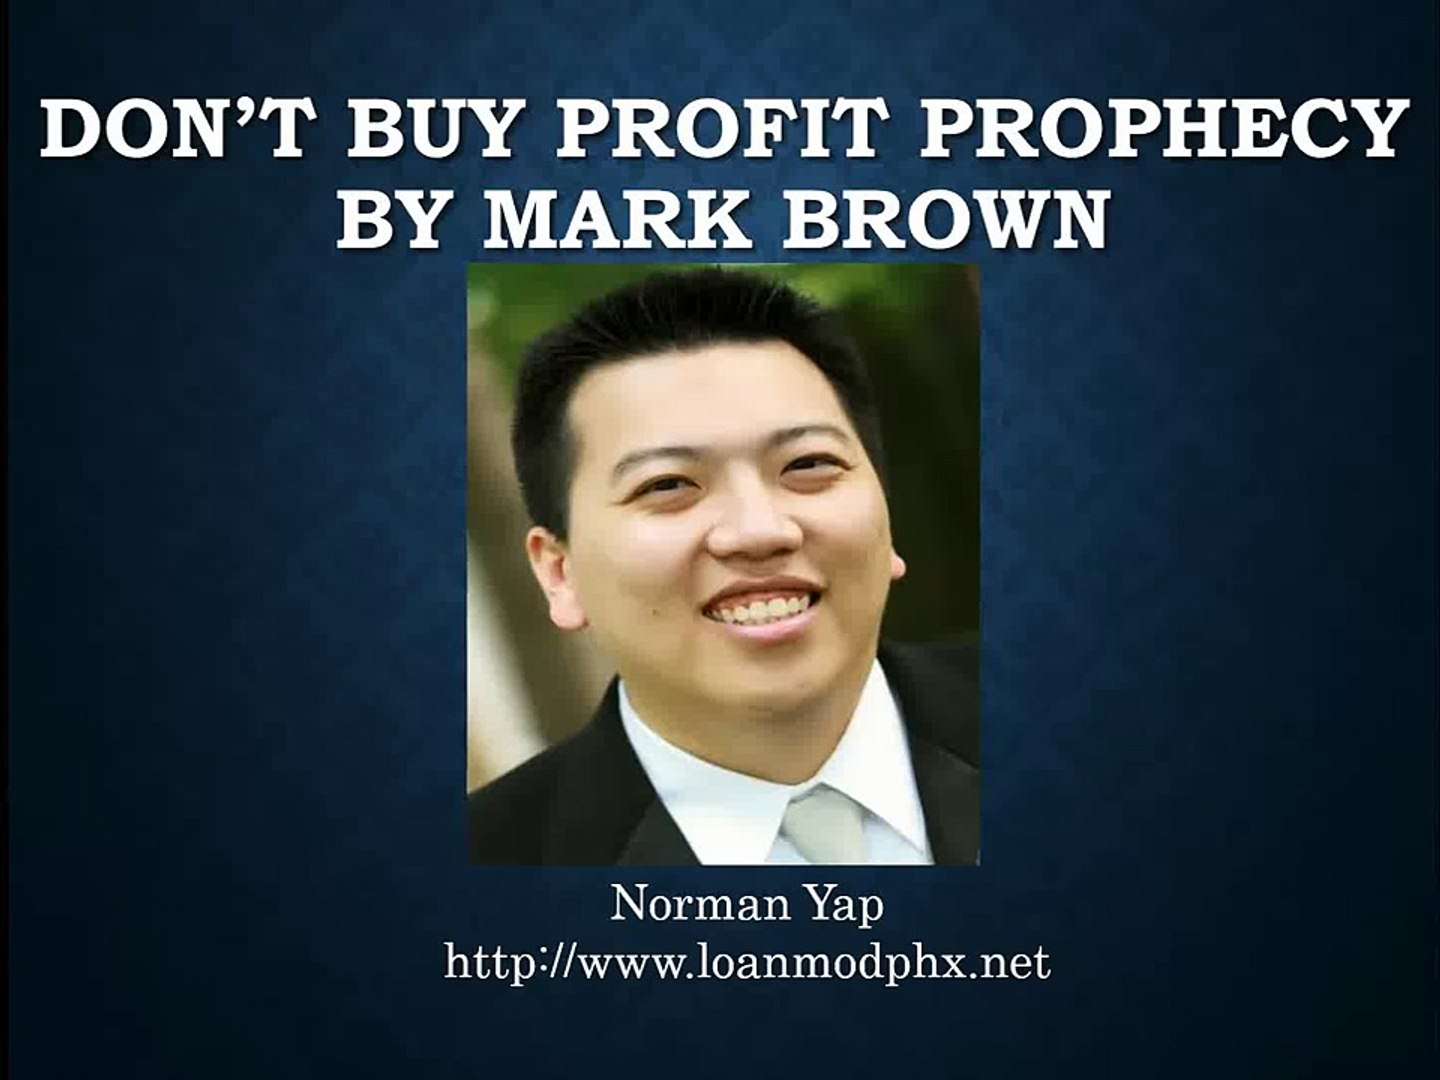 DON'T BUY Profit Prophecy by Mark Brown - Profit Prophecy VIDEO REVIEW Binary Options